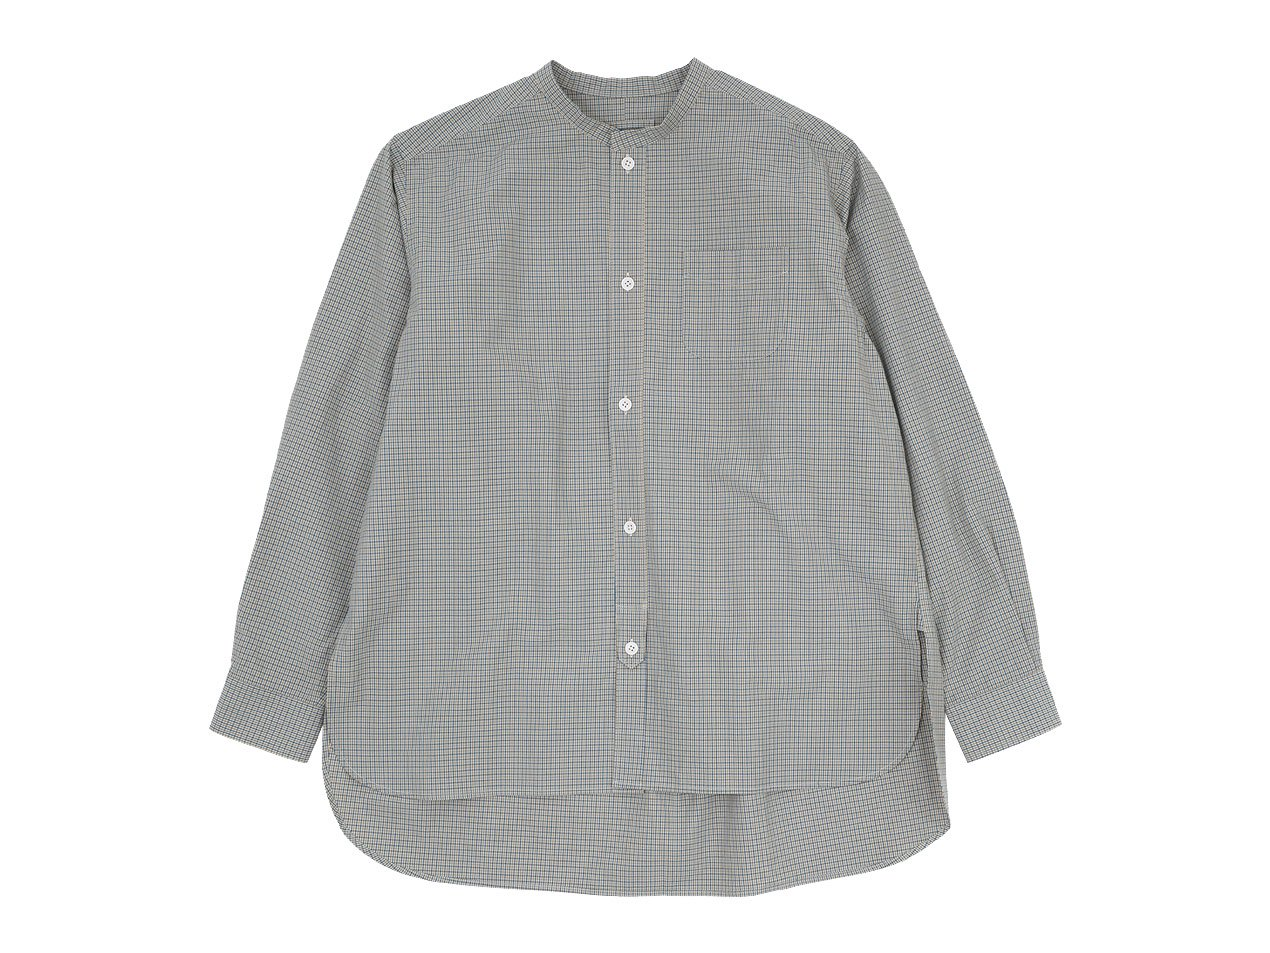 blanc no collar long shirts cotton CLASSIC GINGAM 〔メンズ〕